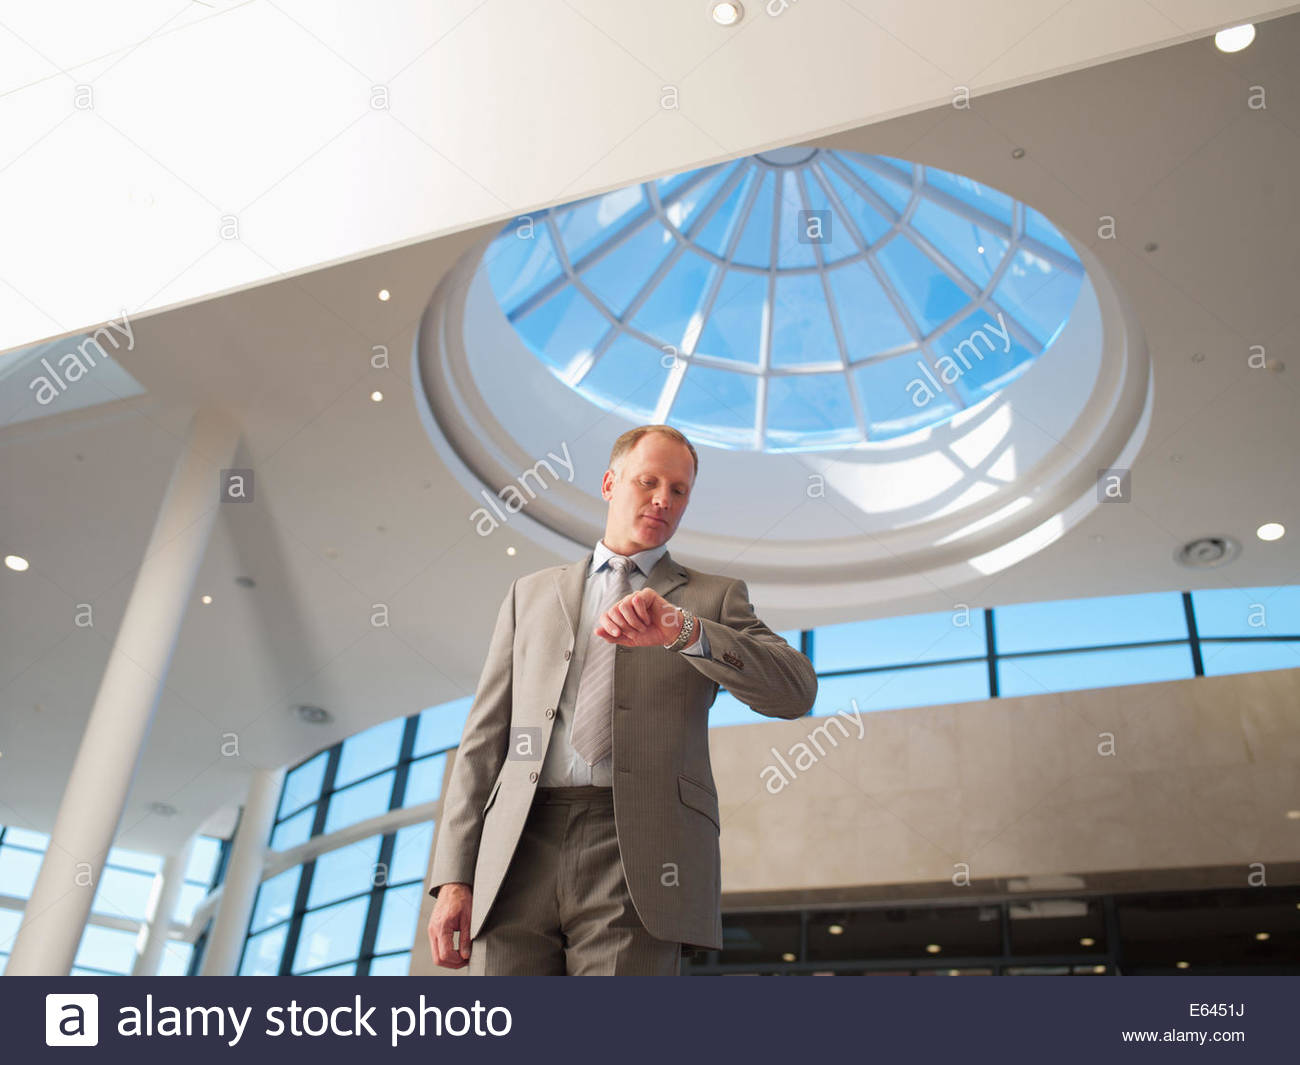 Businessman checking wristwatch Photo Stock